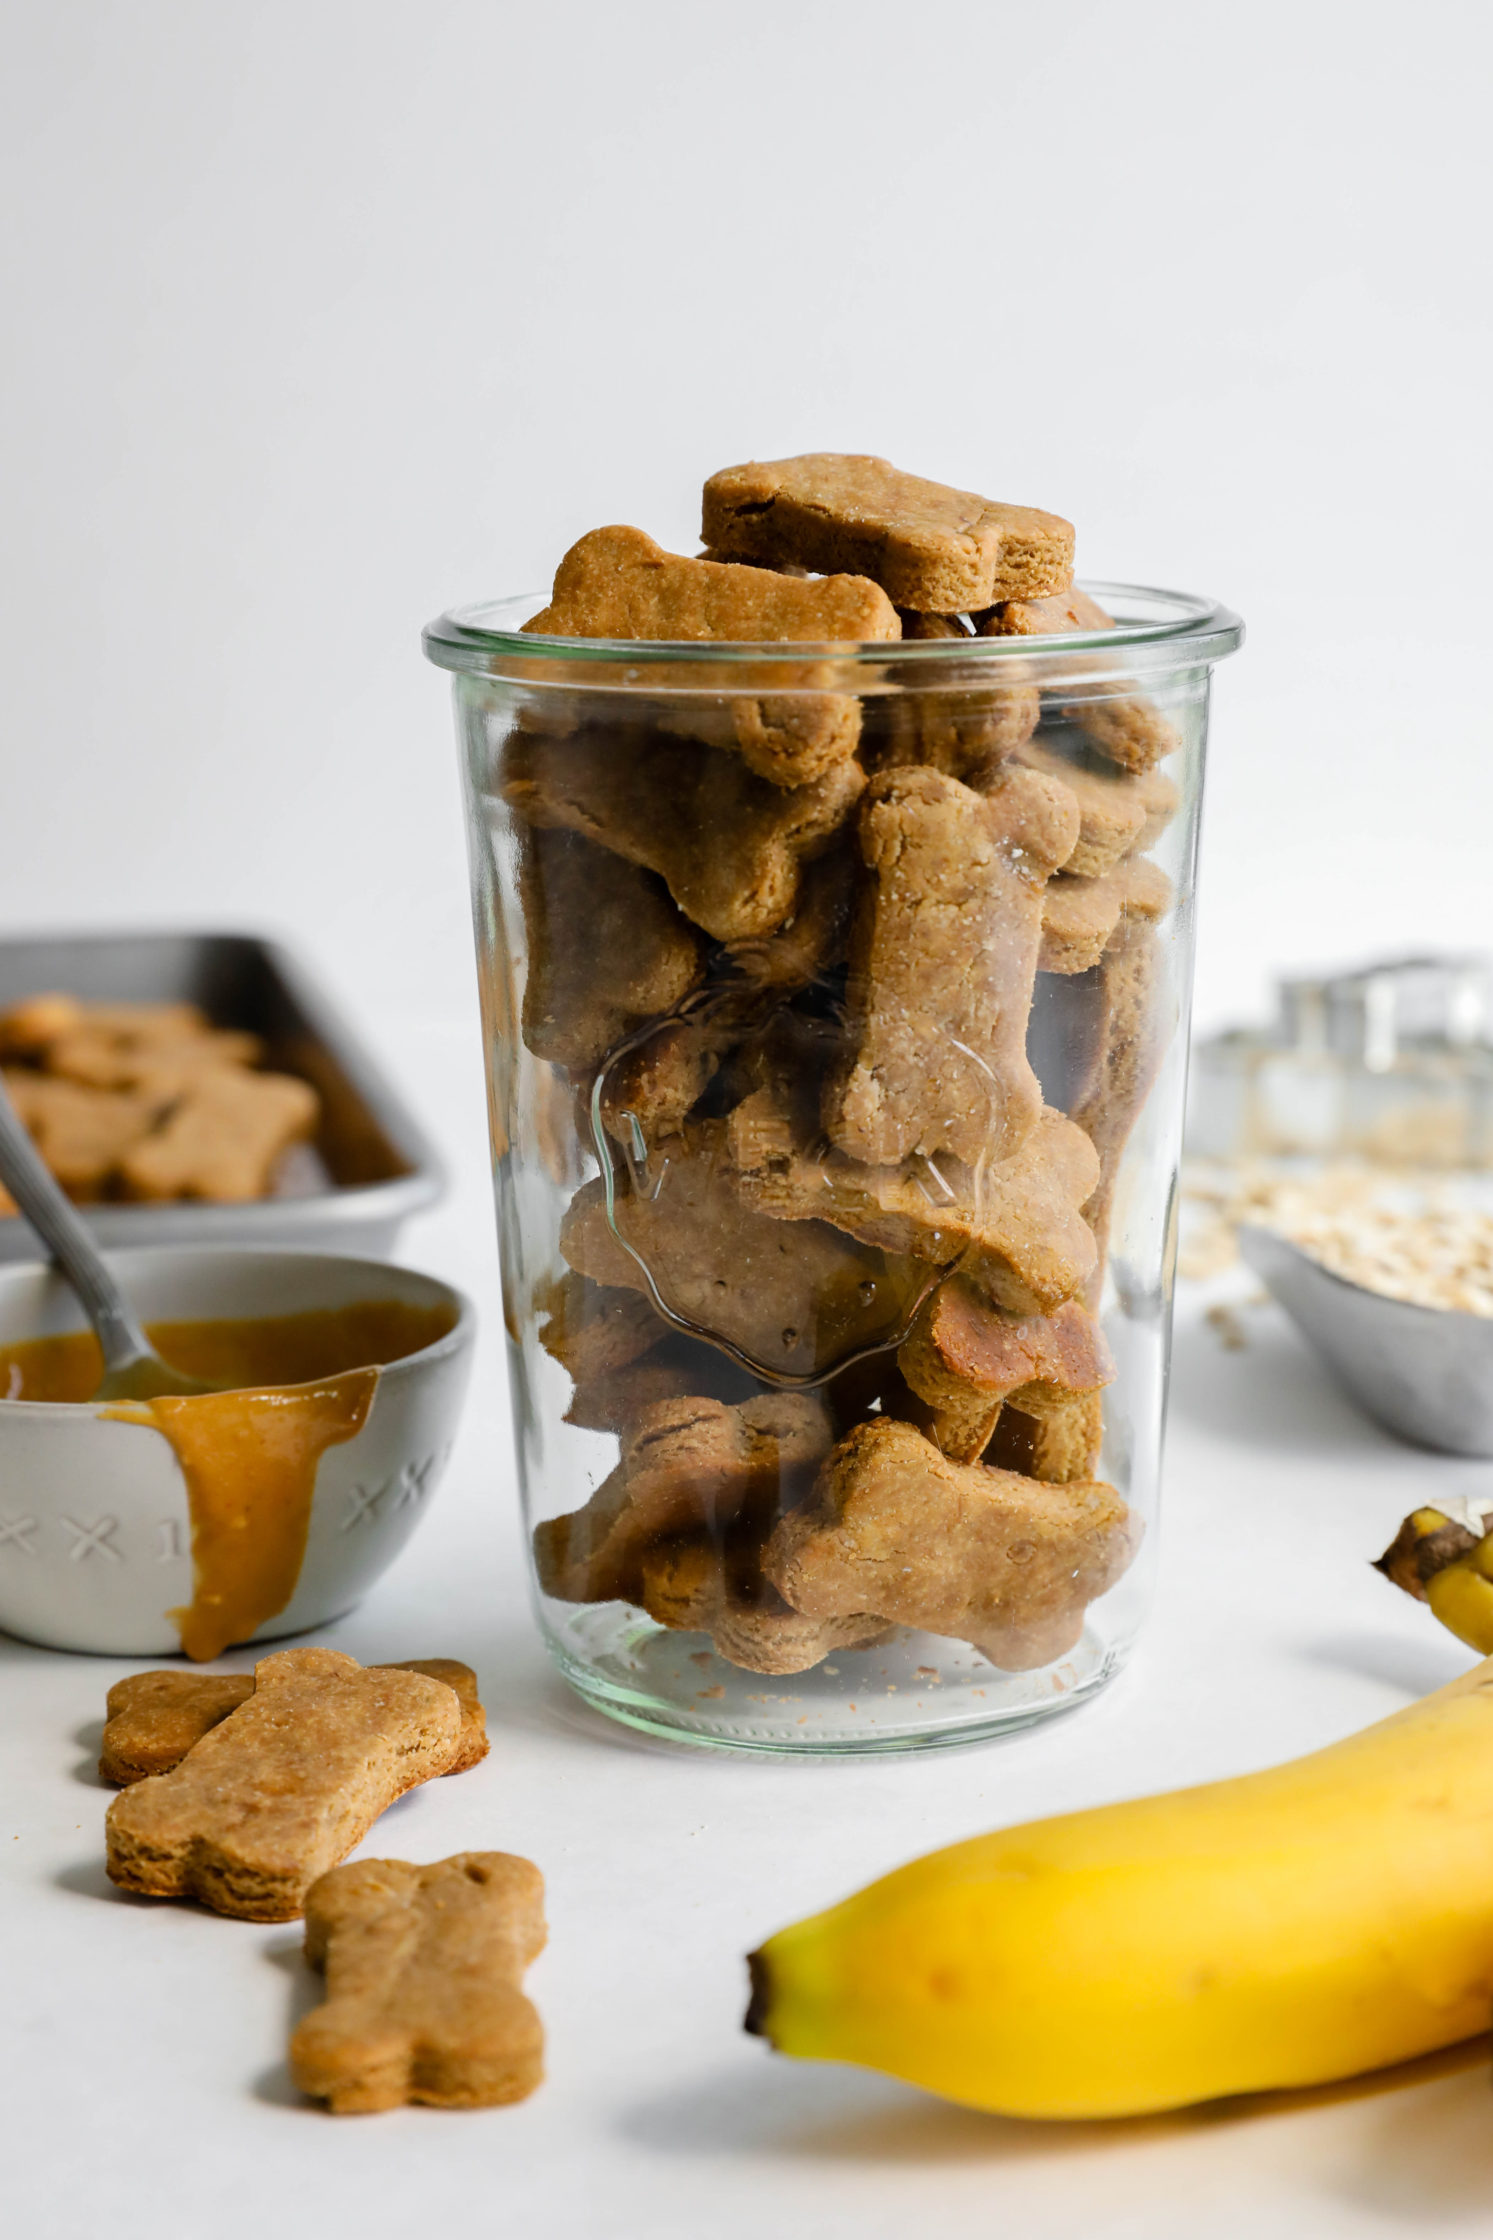 3-Ingredient Peanut Butter Banana Dog Treats by Flora & Vino